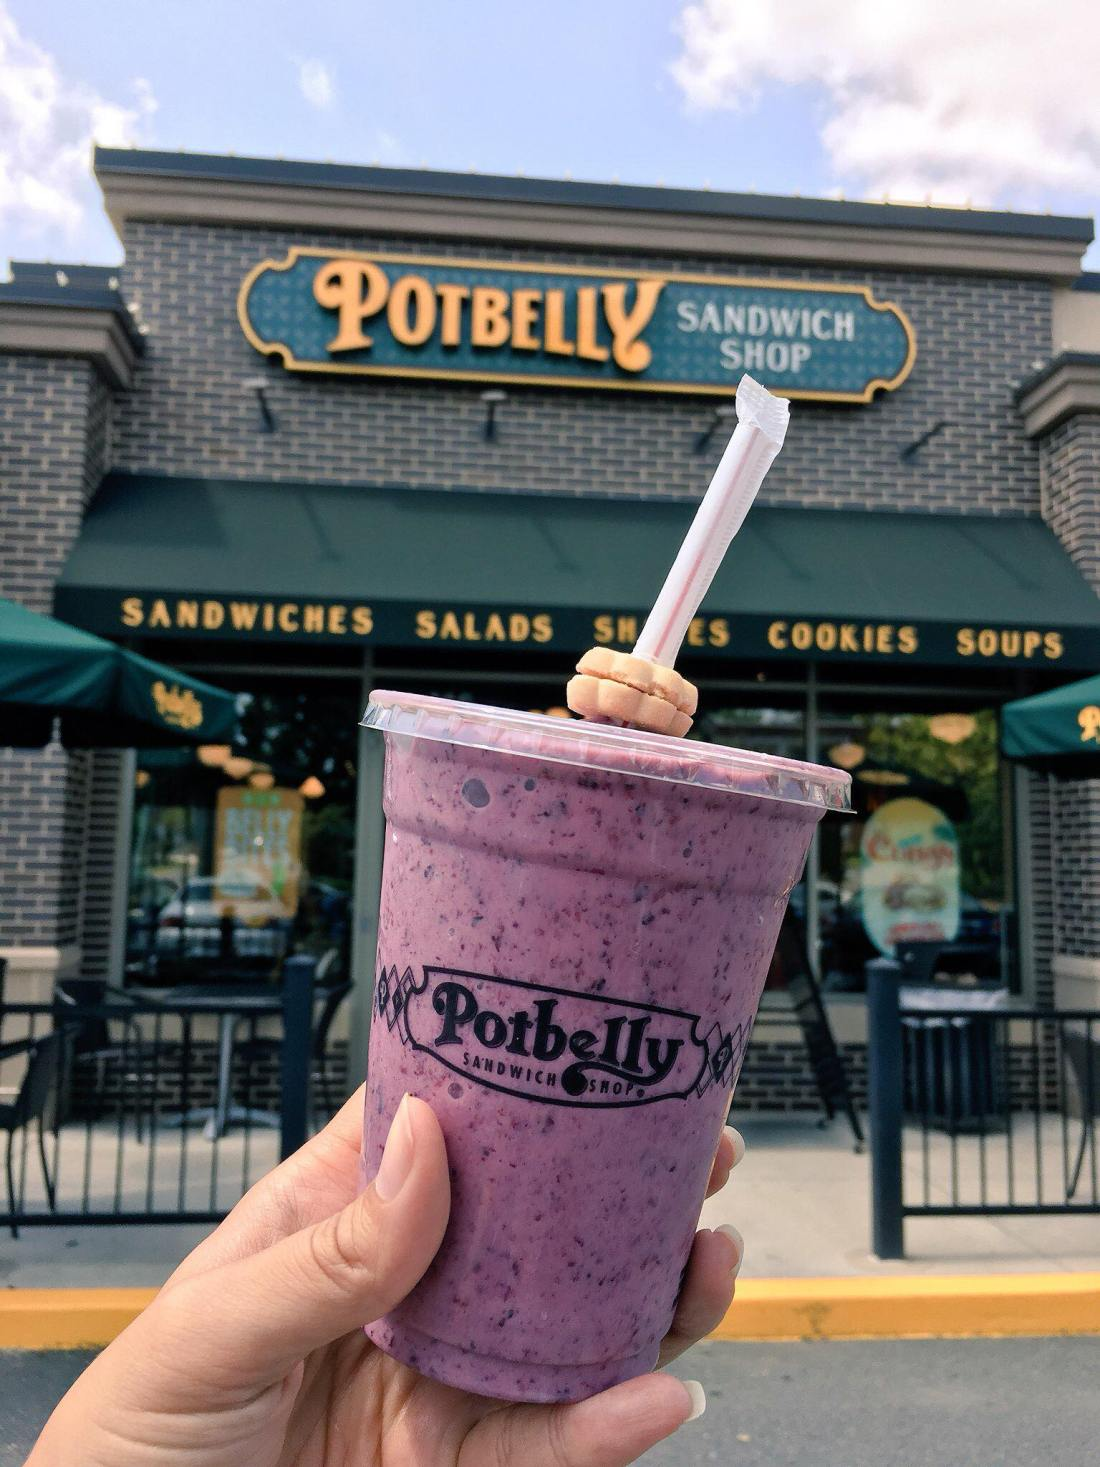 """Free Shake Friday at Potbelly Mixed Berry Smoothie. July 27th is Free Shake Friday at Potbelly, claim your free shake or smoothie with any purchase by just saying """"it's free shake friday""""."""